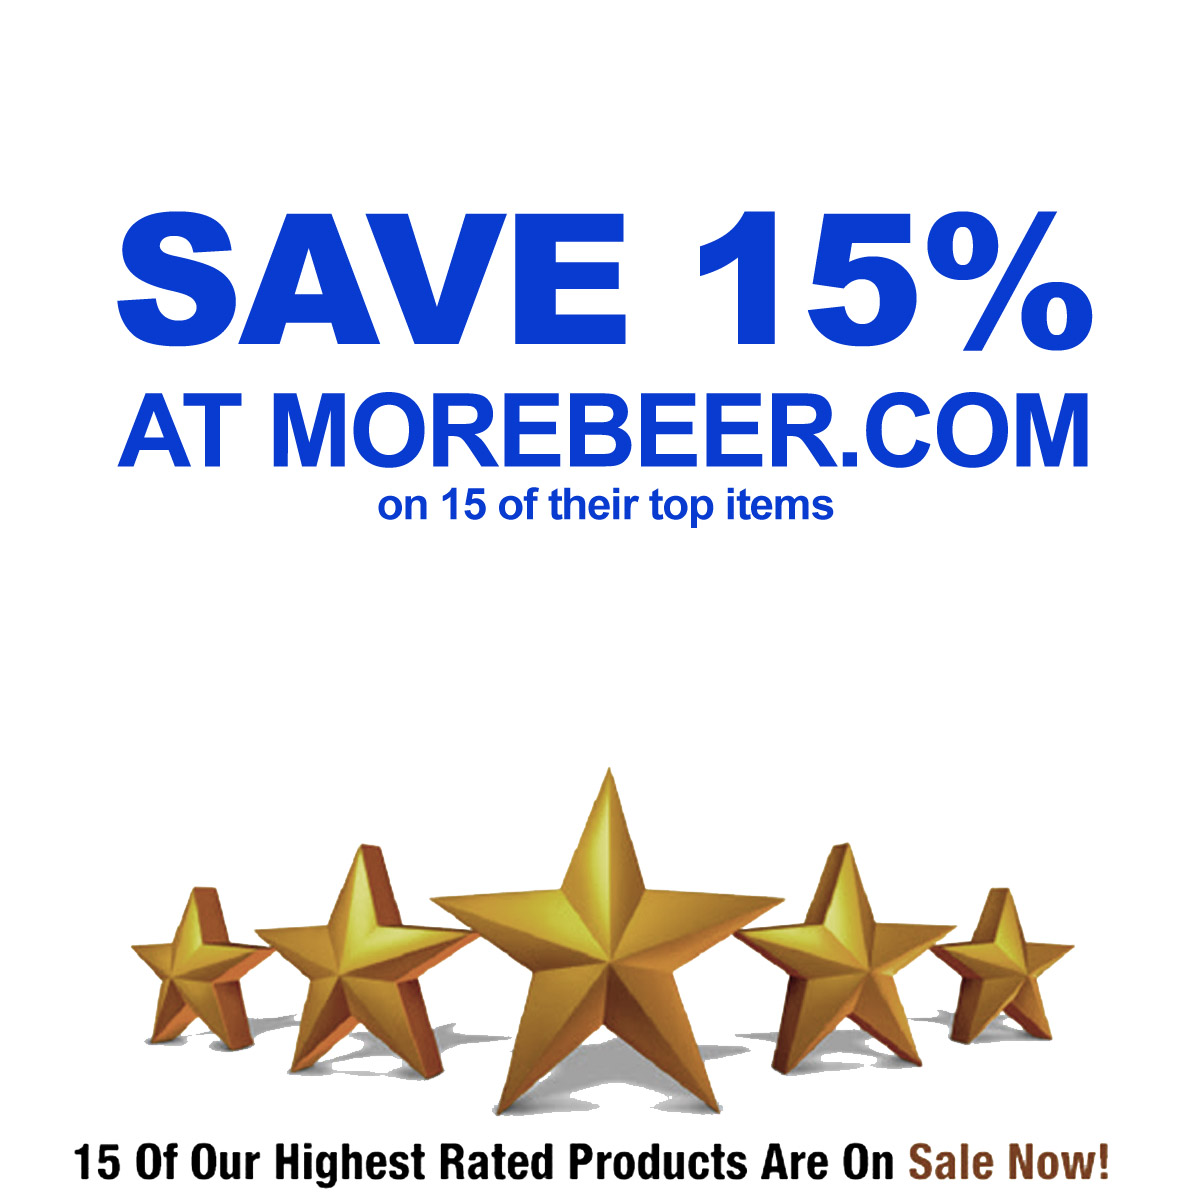 MoreBeer Save An Extra 15% At MoreBeer.com on 15 of Their Highest Rated Products With This More Beer Promo Code Coupon Code